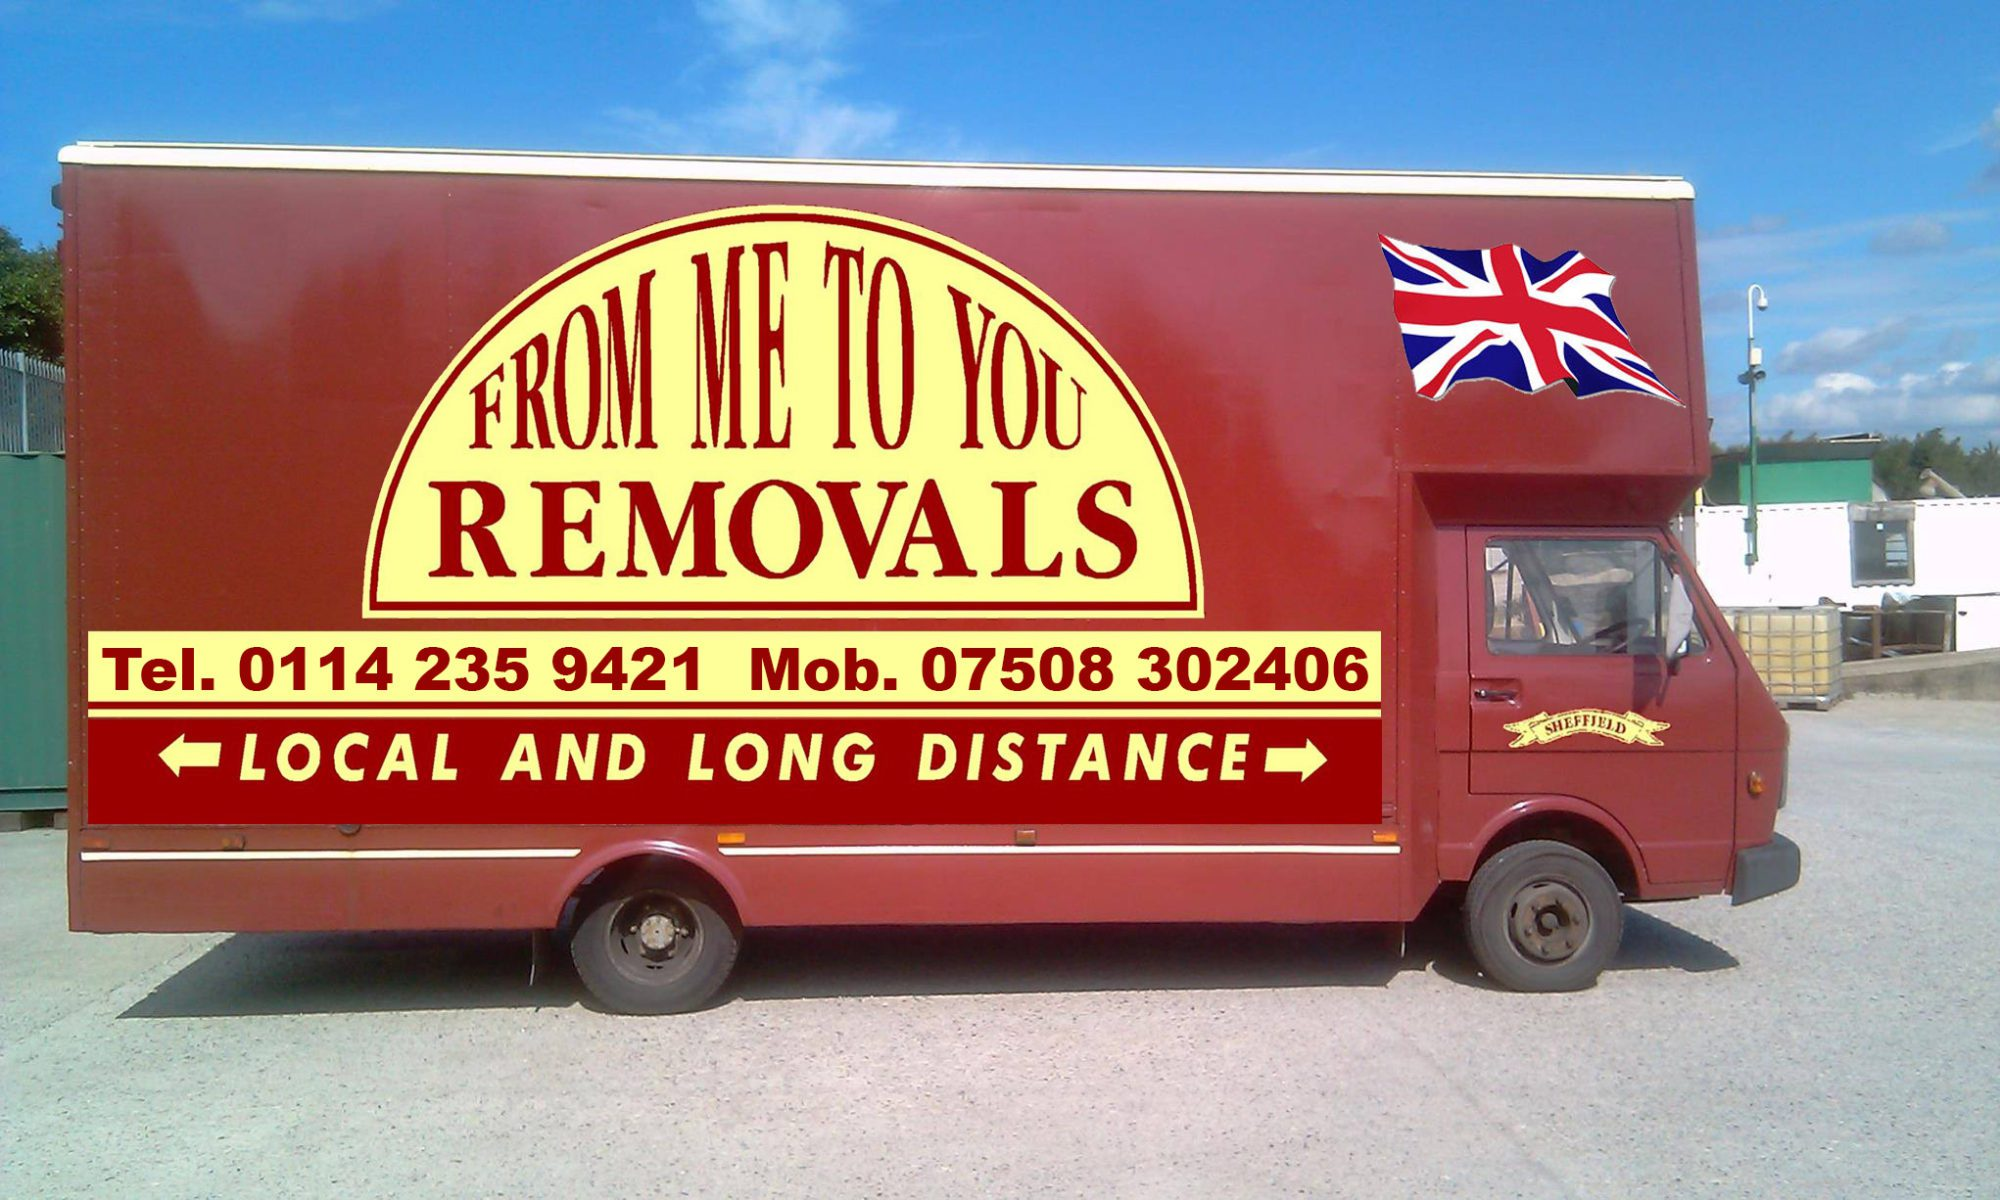 From Me To You Removals